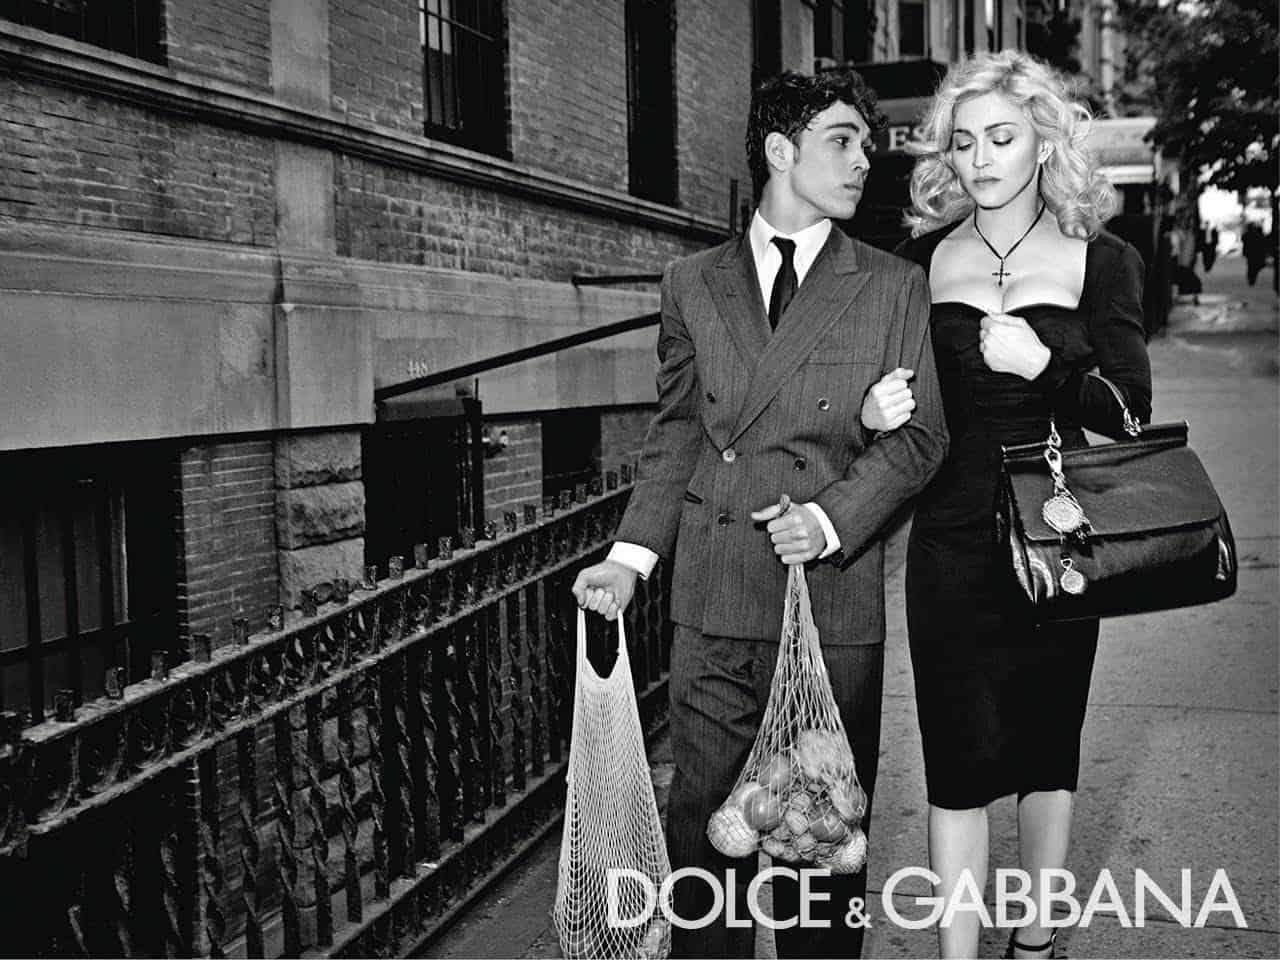 The Dynasty of Dolce & Gabbana